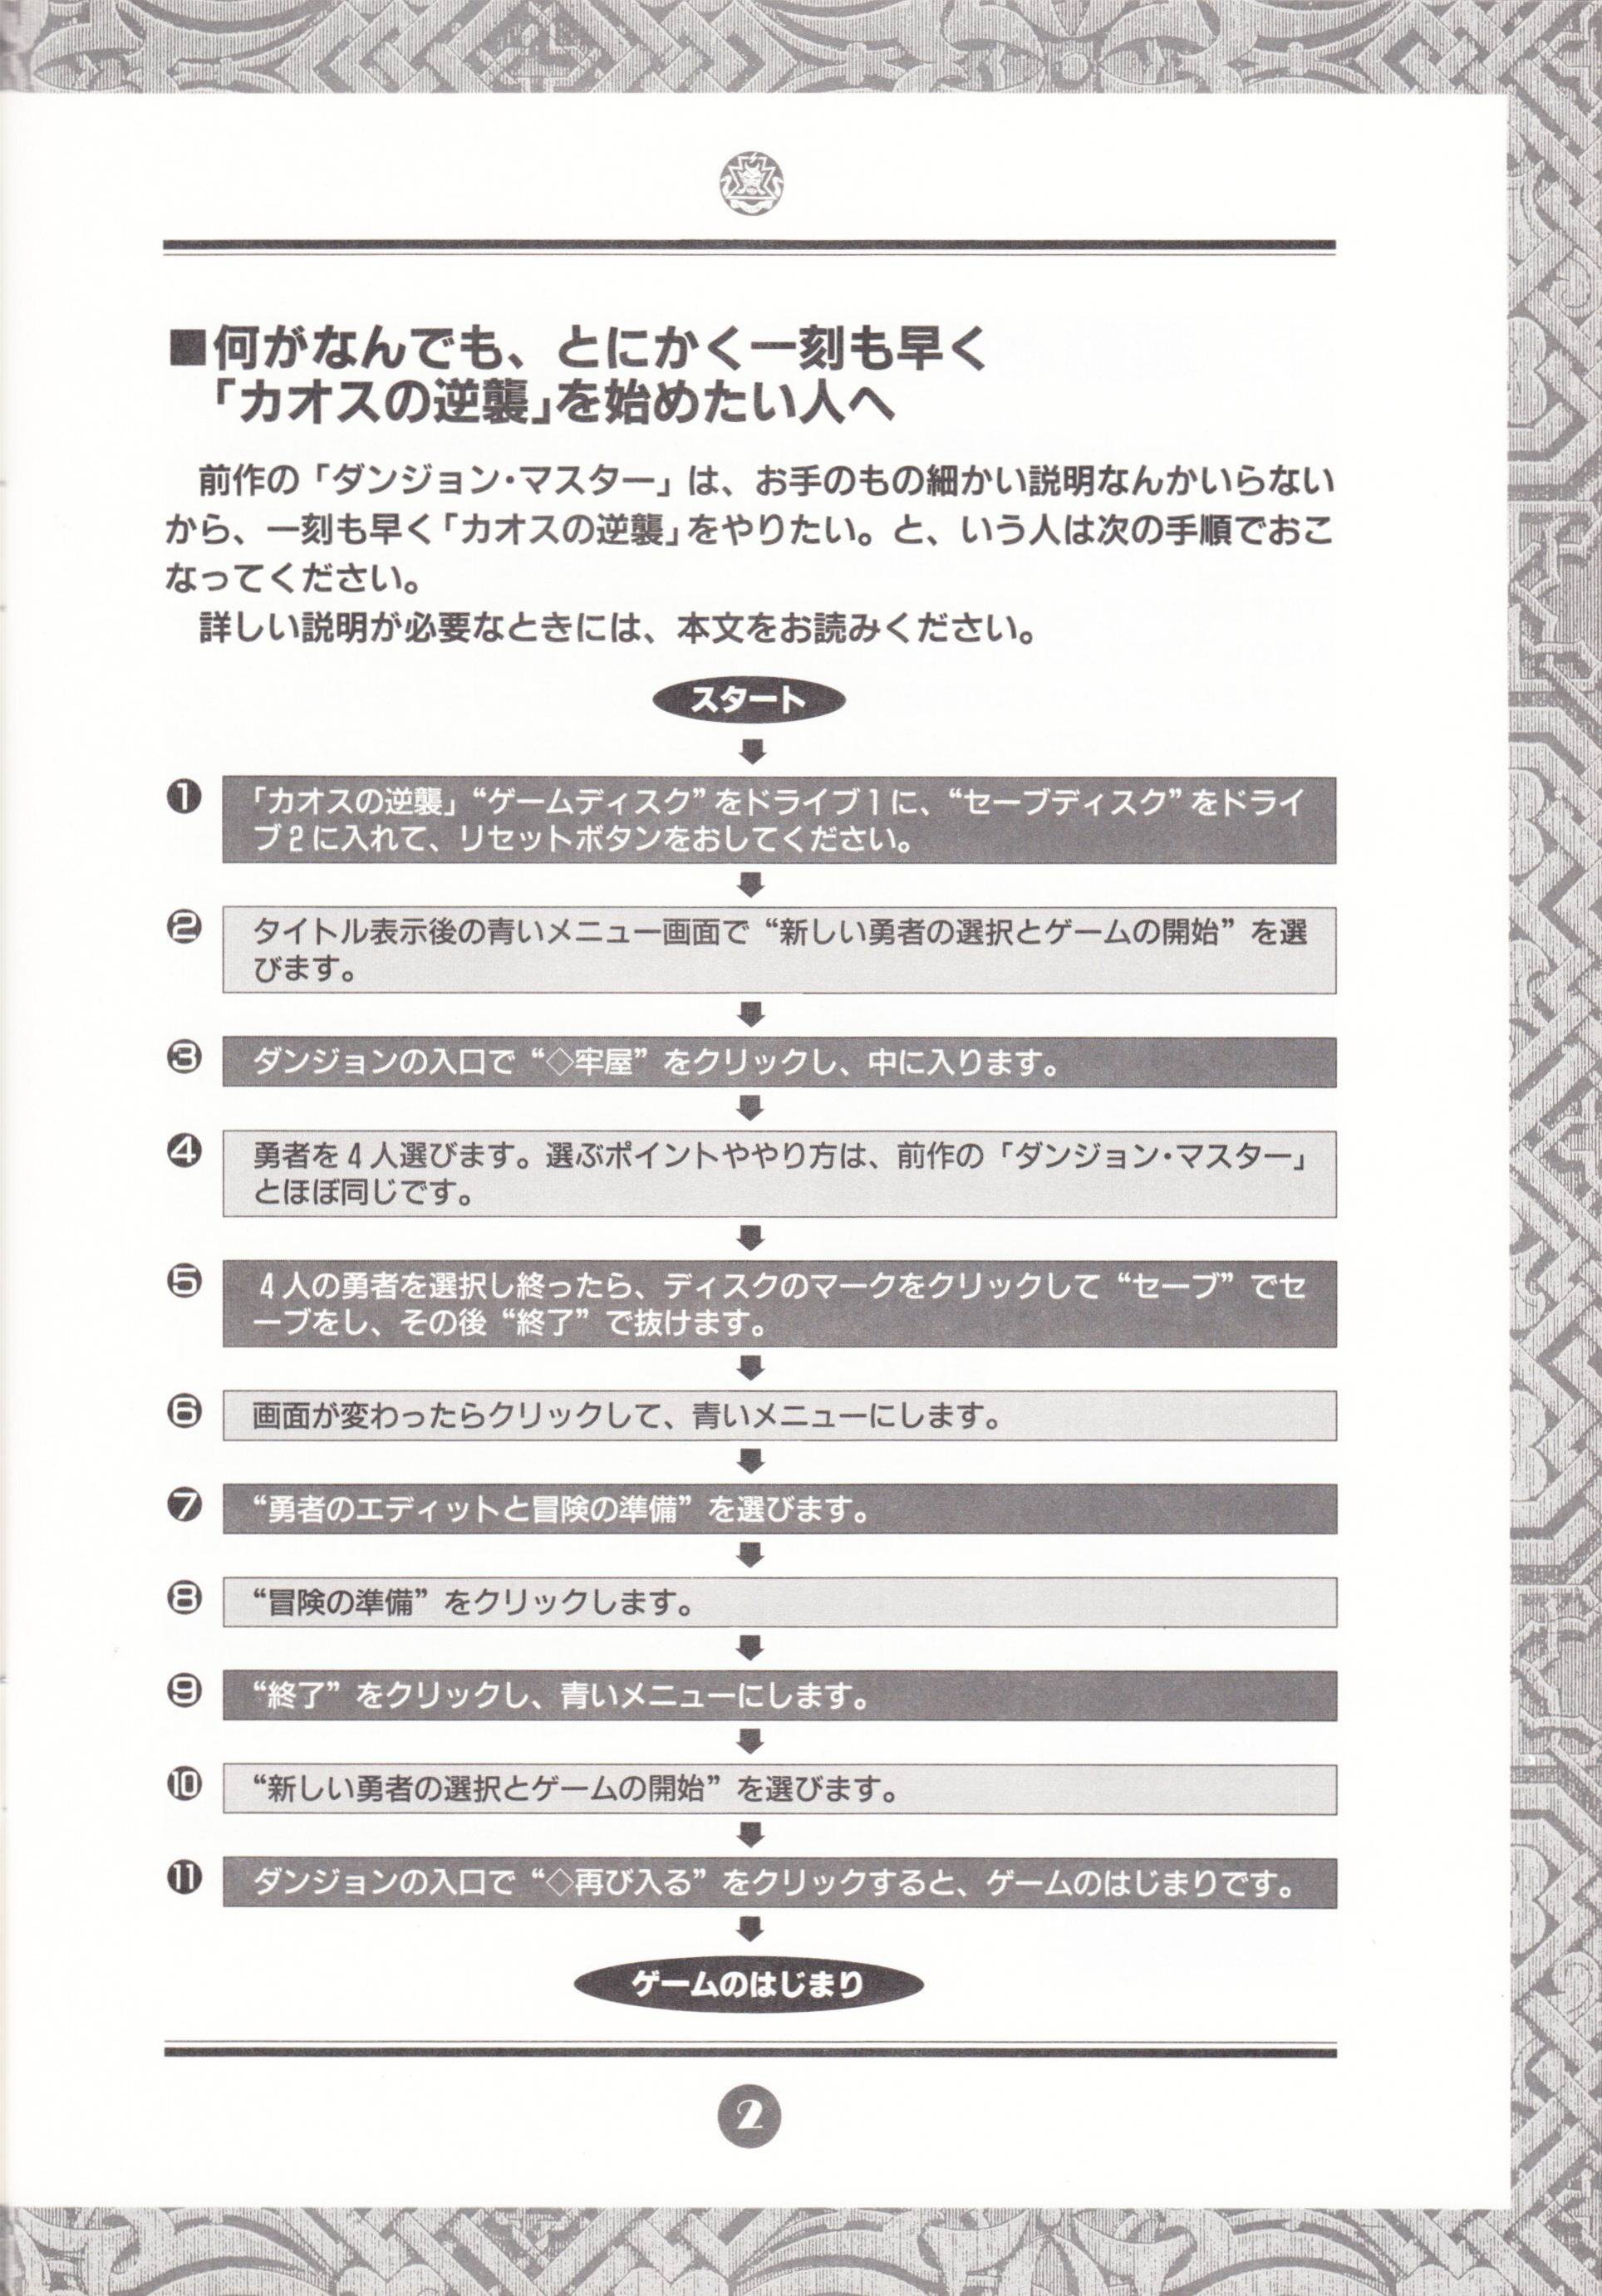 Game - Chaos Strikes Back - JP - PC-9801 - 5.25-inch - An Operation Manual - Page 005 - Scan